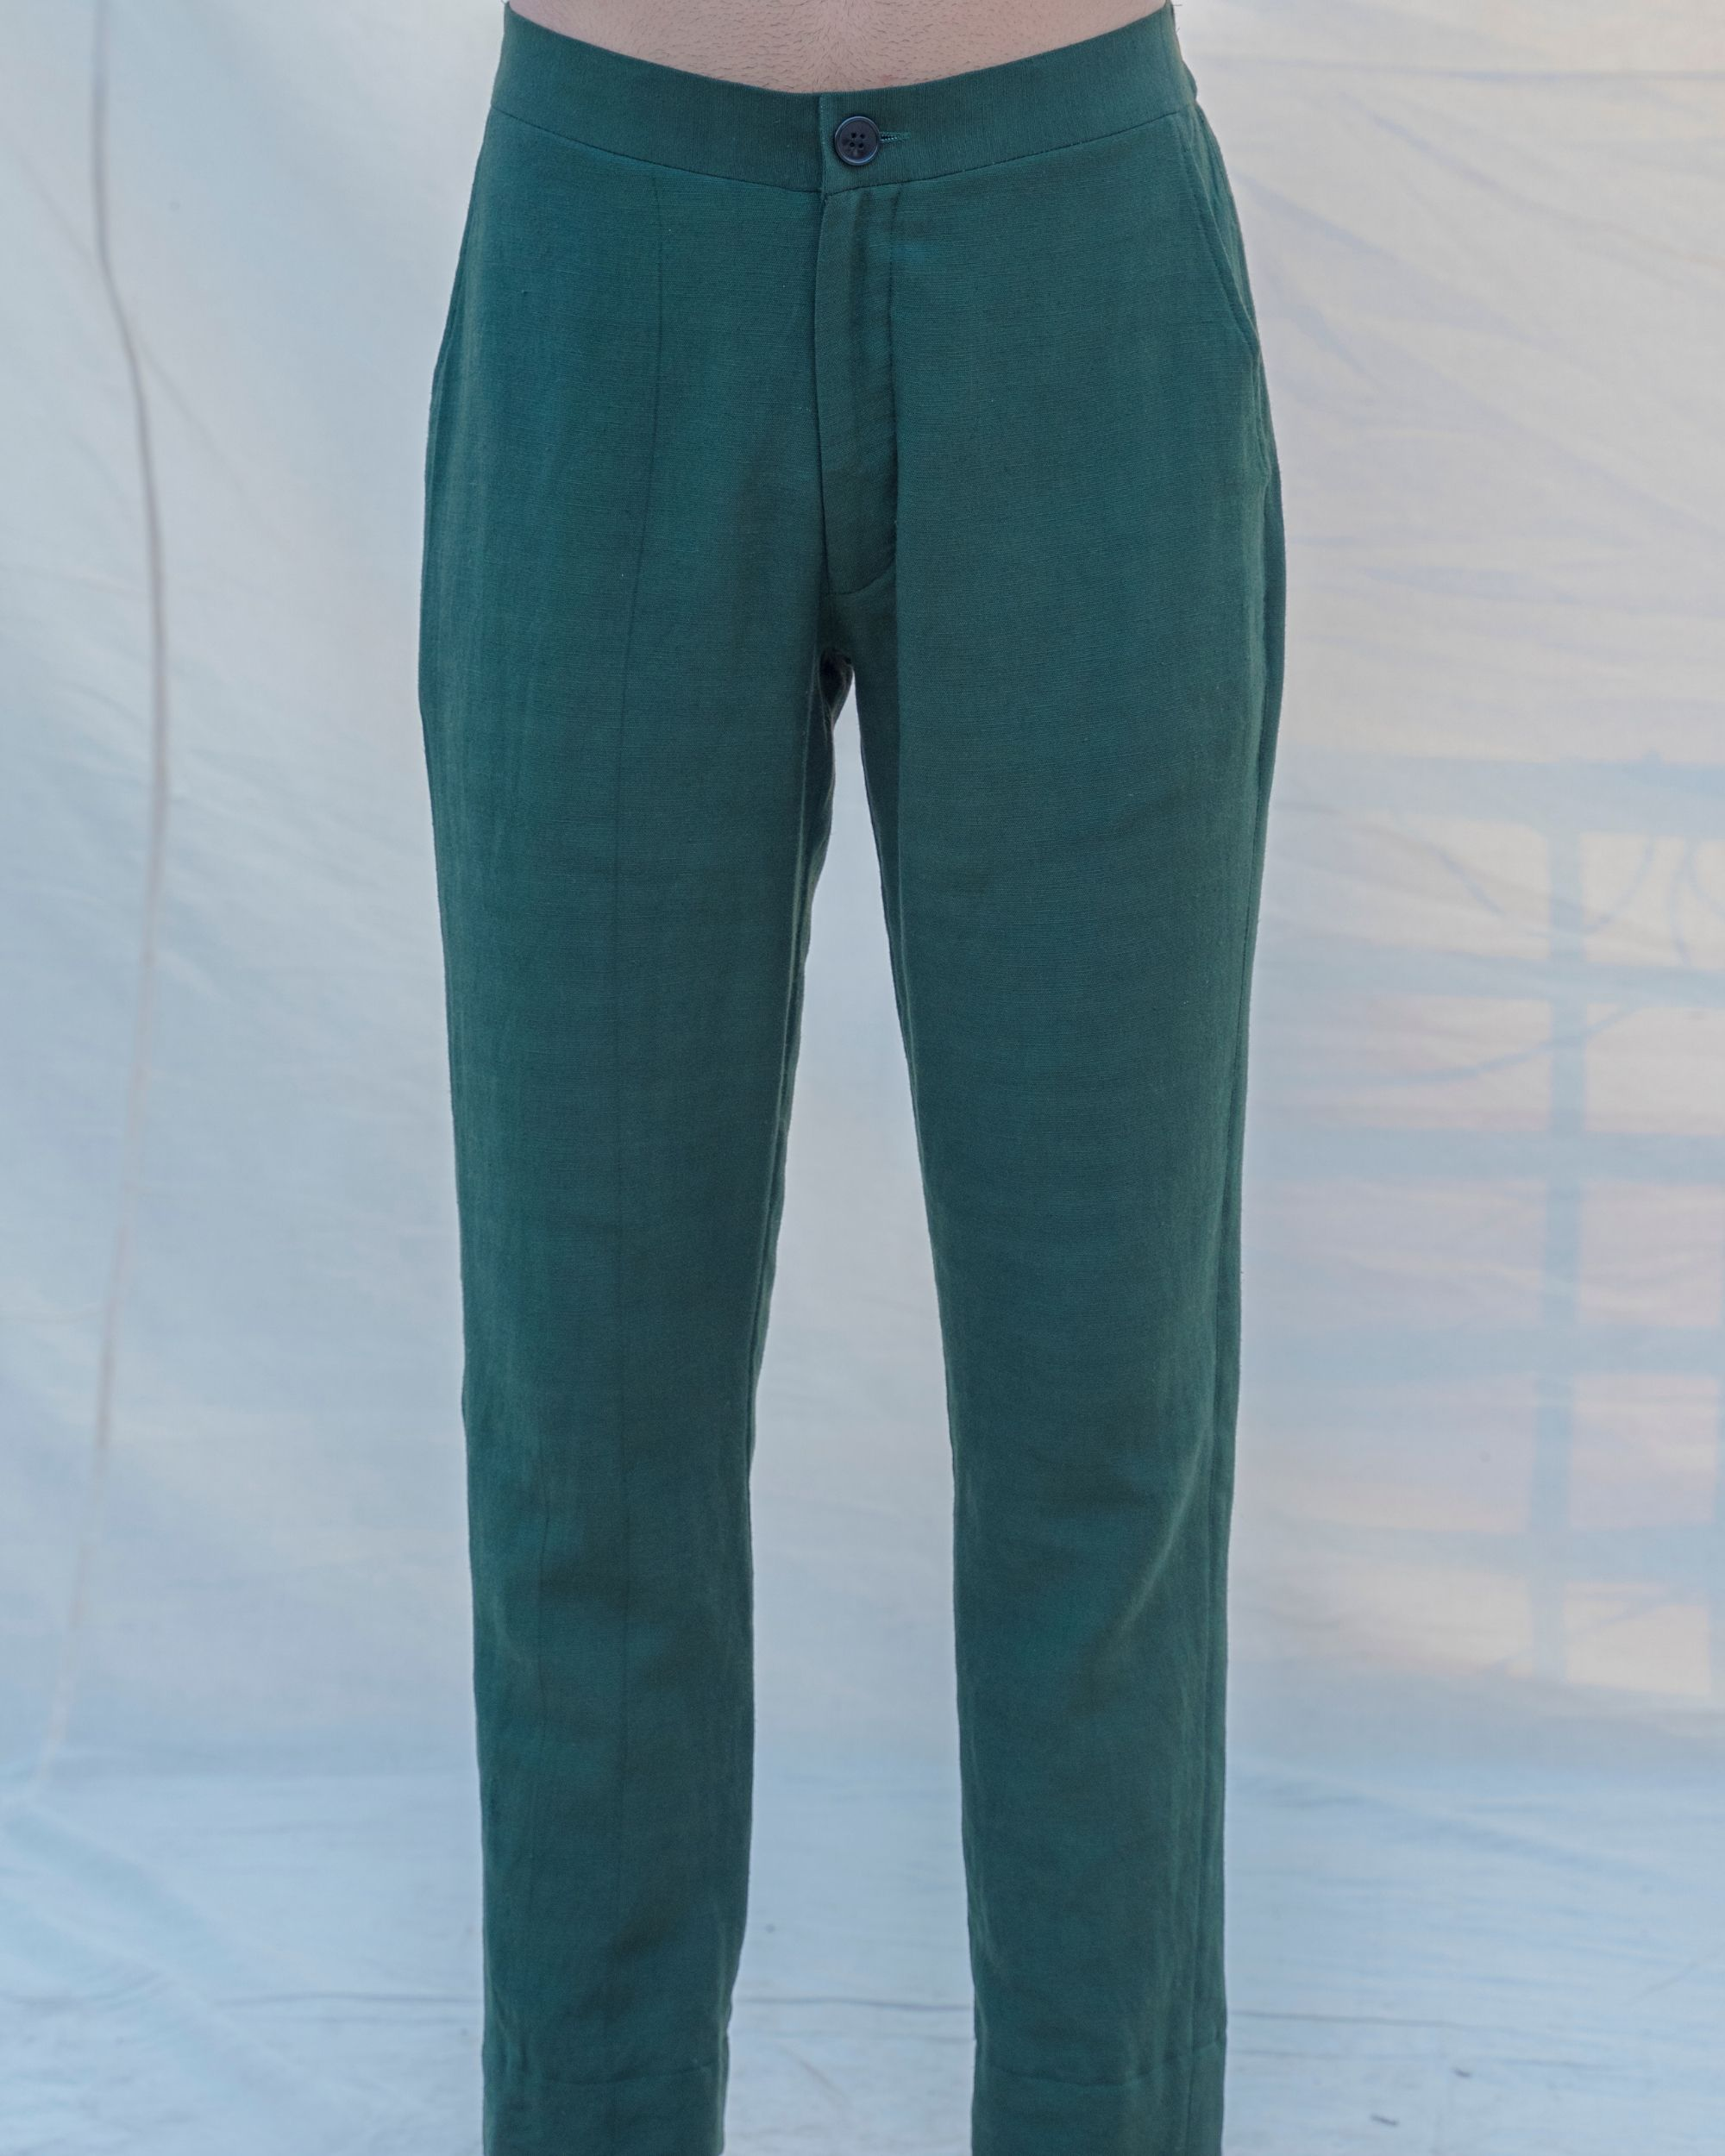 Bottle green cotton linen pants